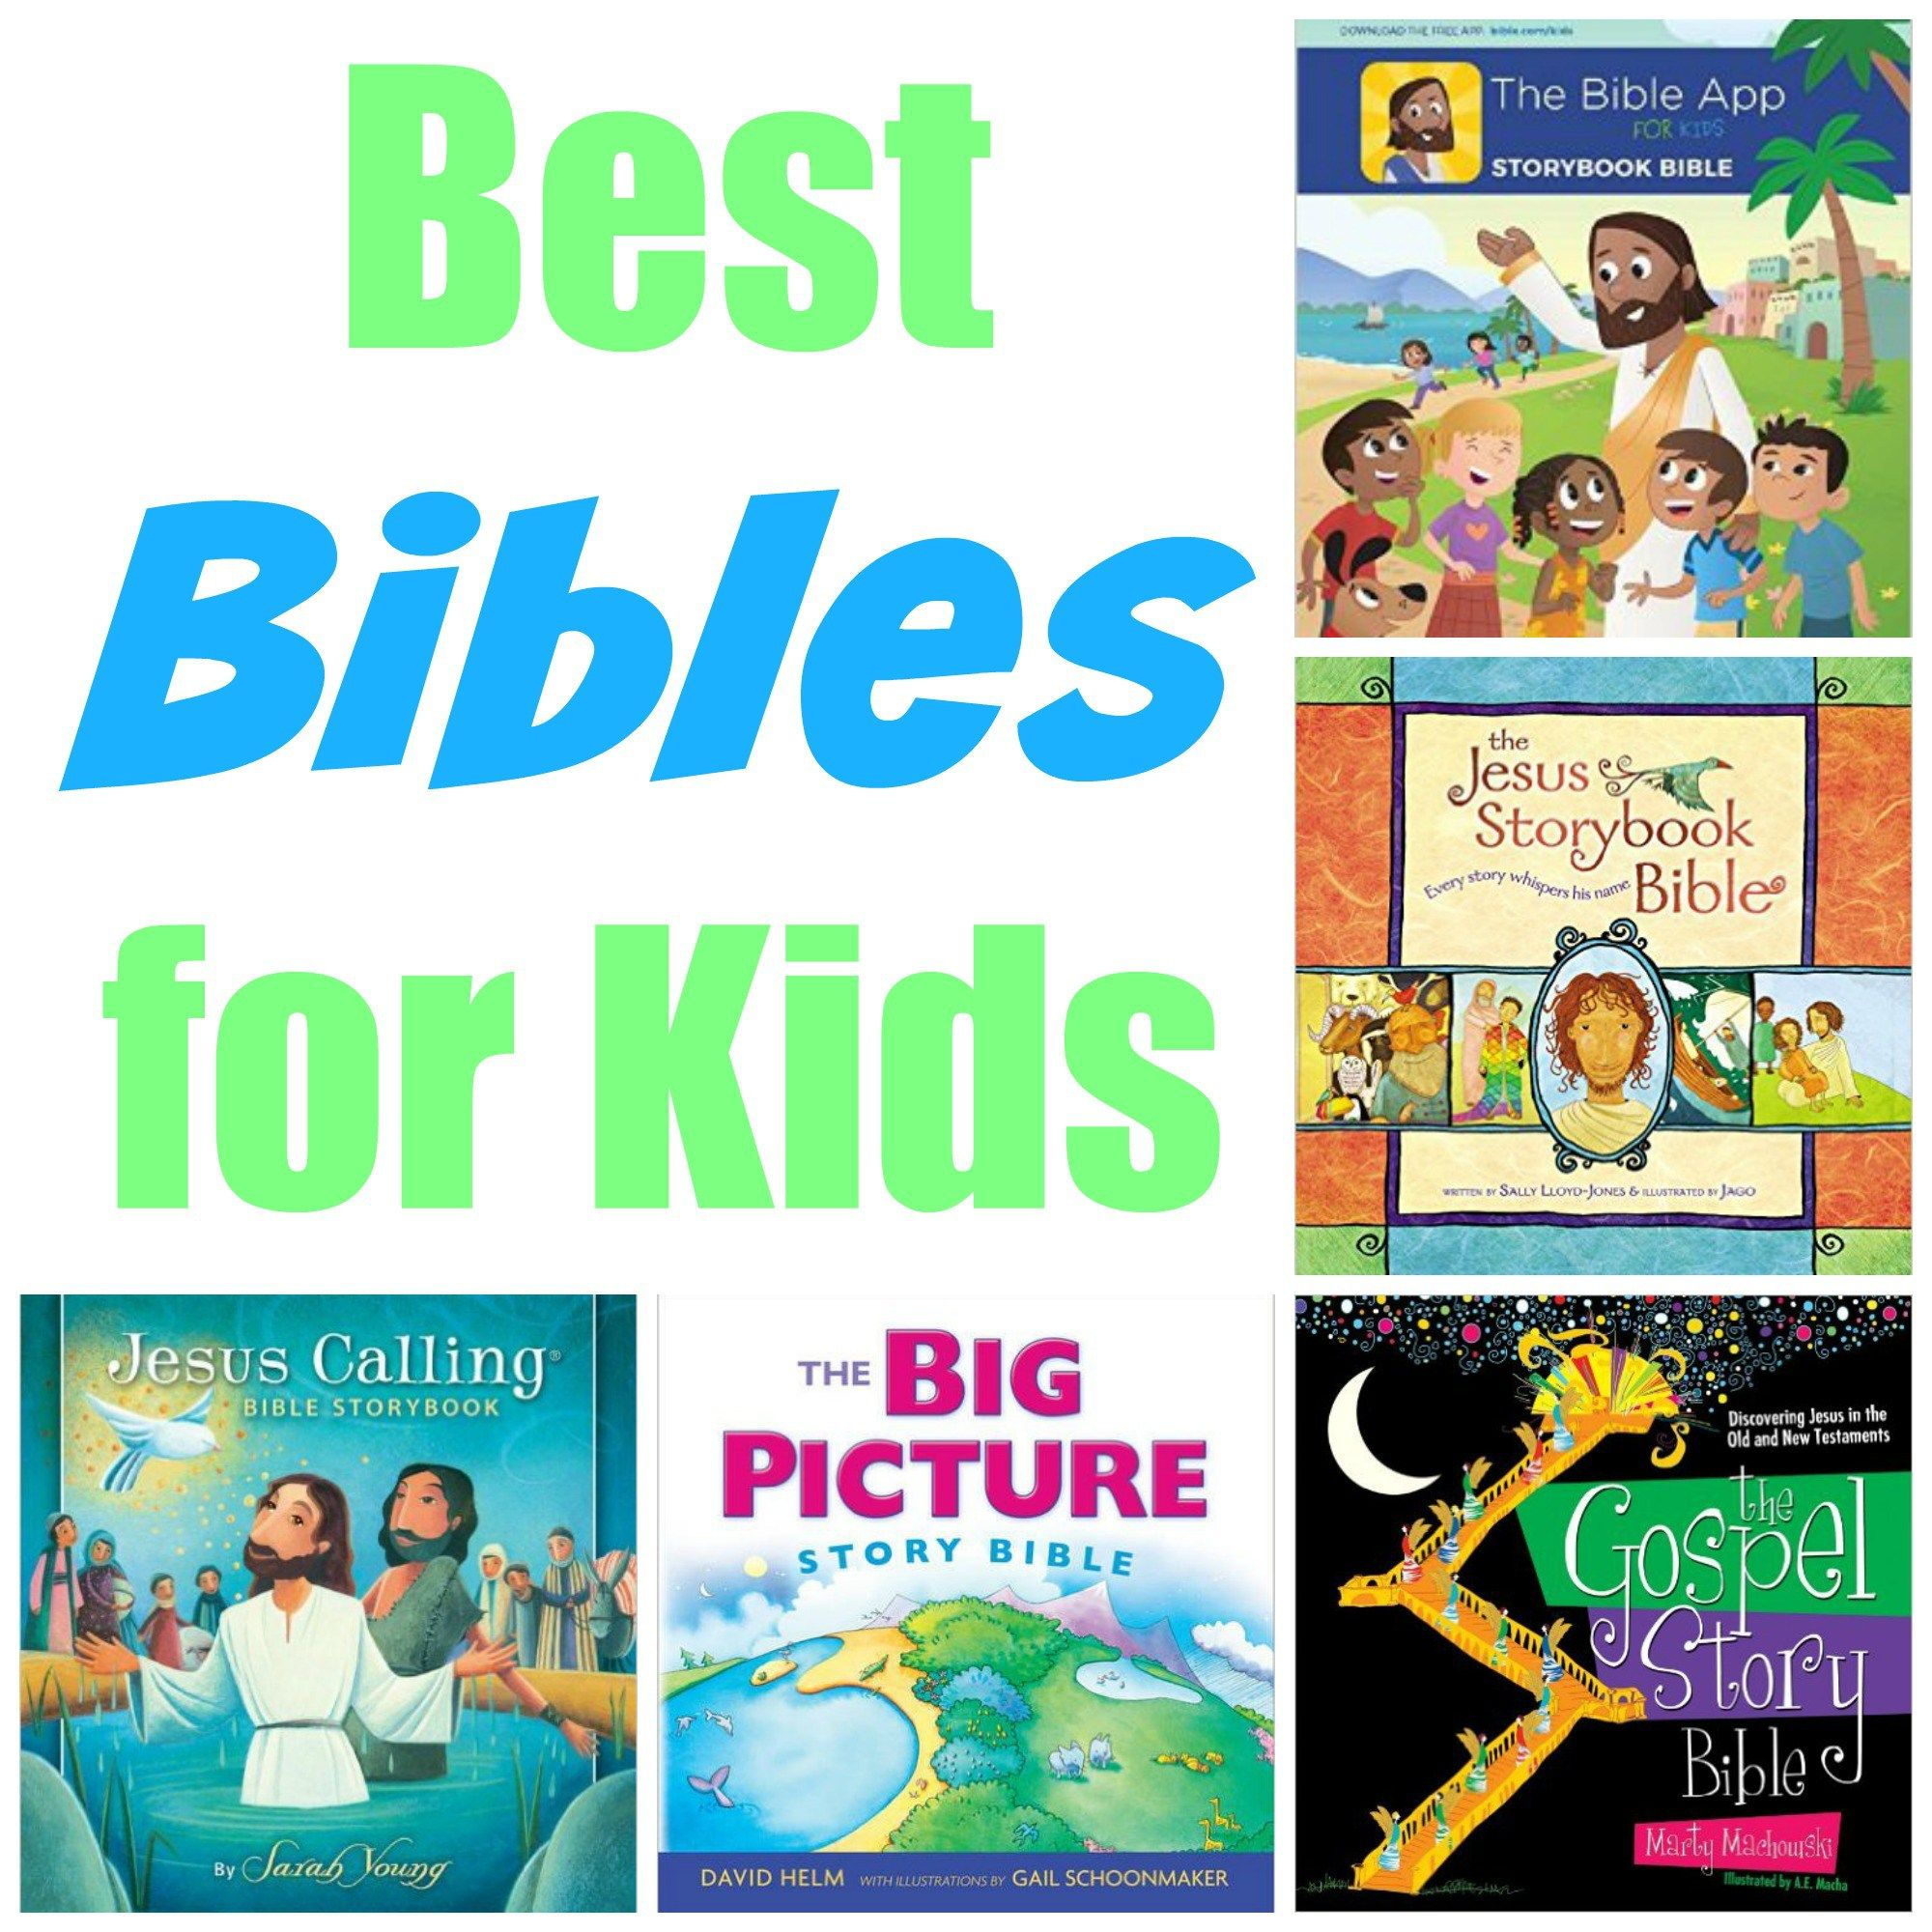 Best bibles for kids easter baskets easter and sunday school sunday school crafts best bibles for kids great ideas to add to an easter basket negle Images